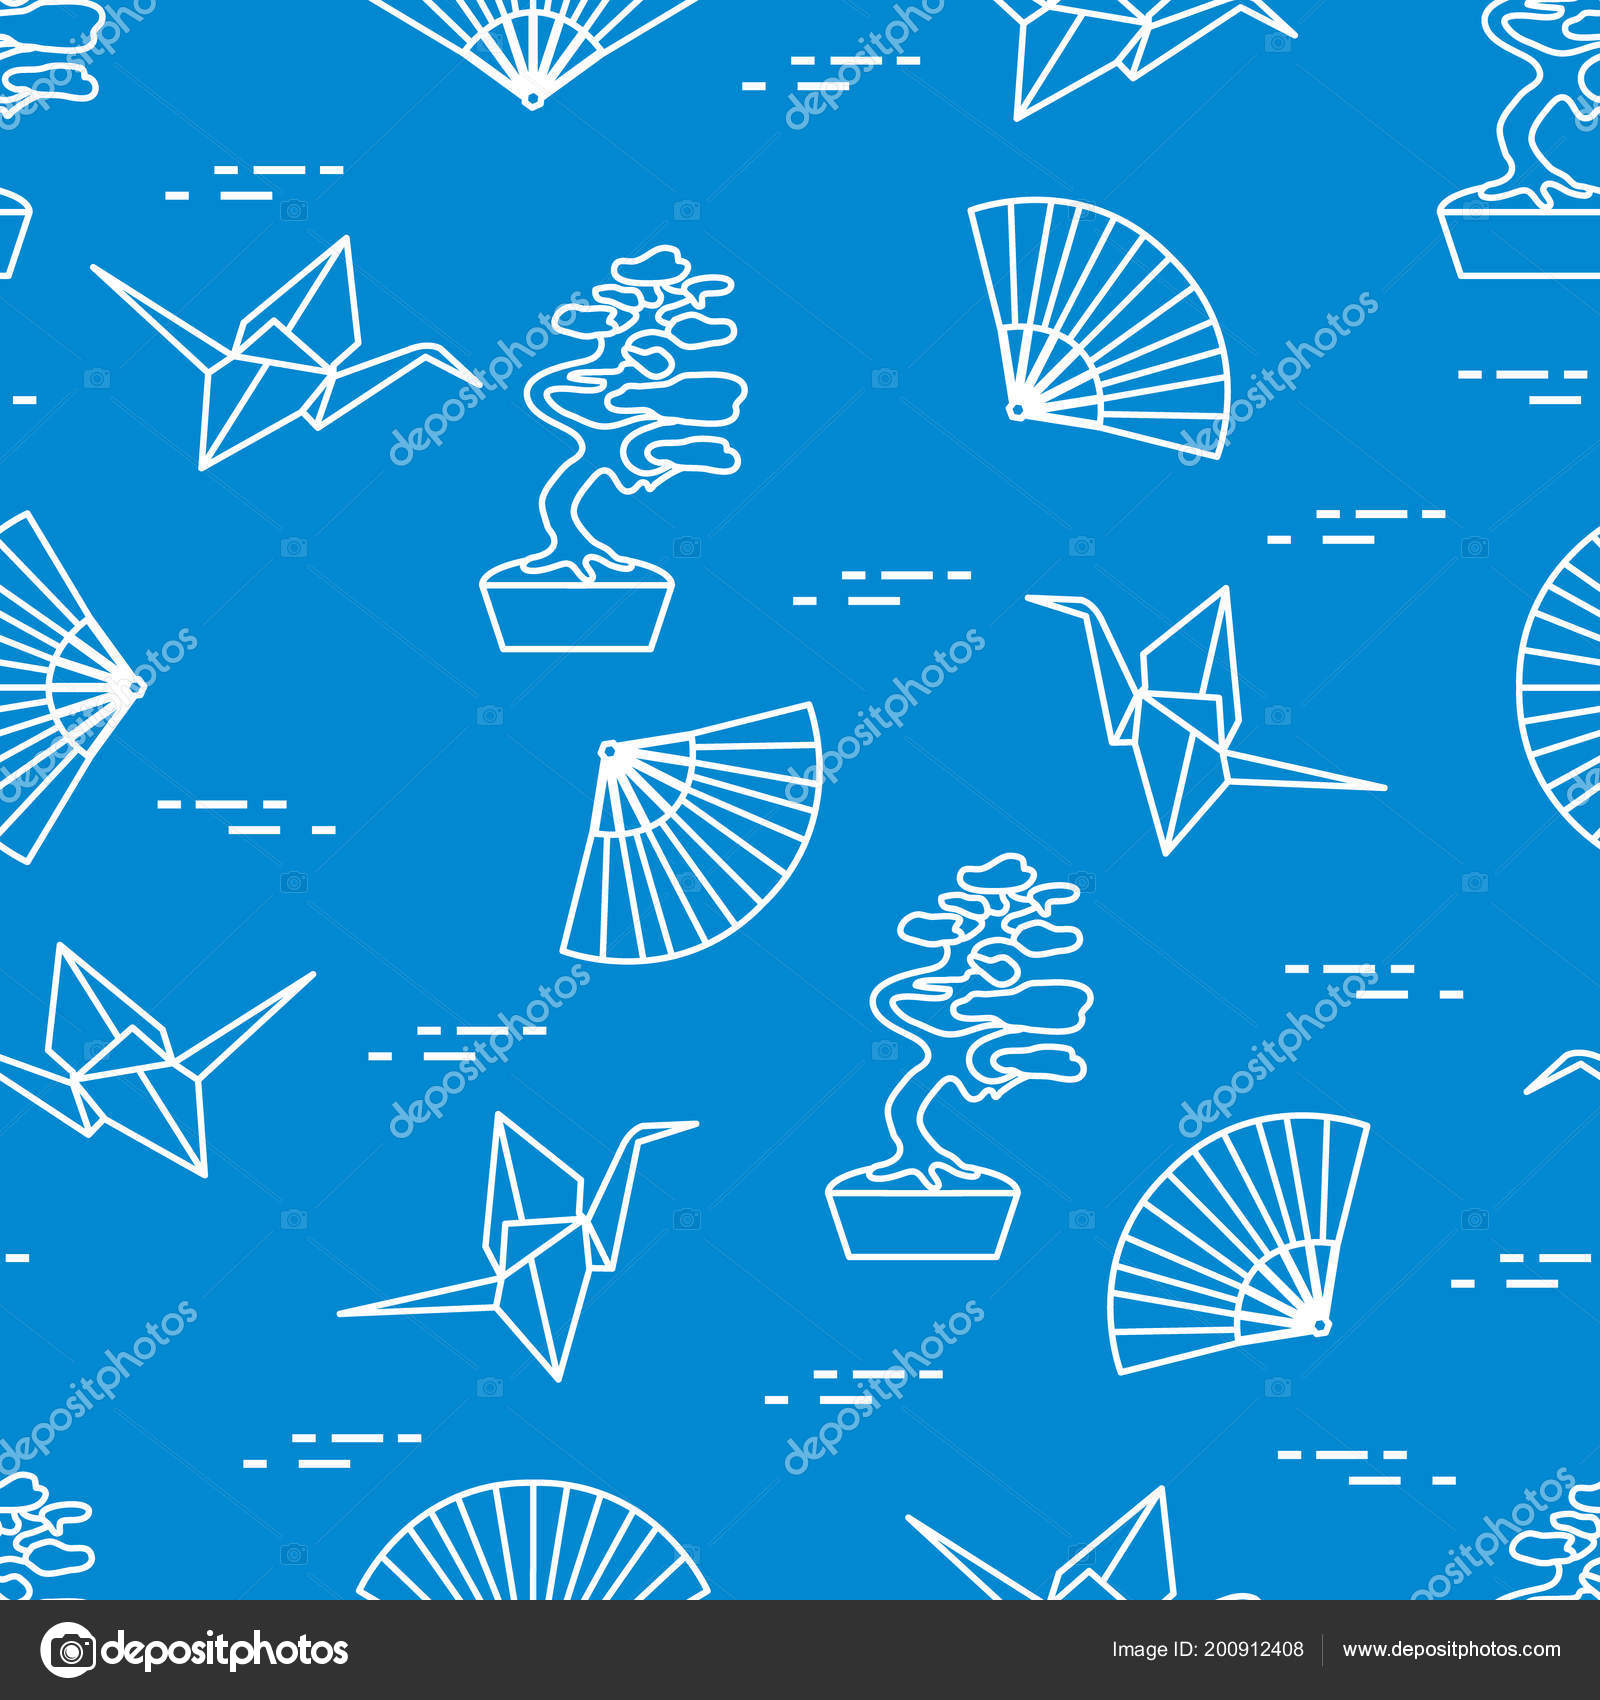 Seamless Pattern Bonsai Trees Origami Paper Cranes Fans Travel Leisure